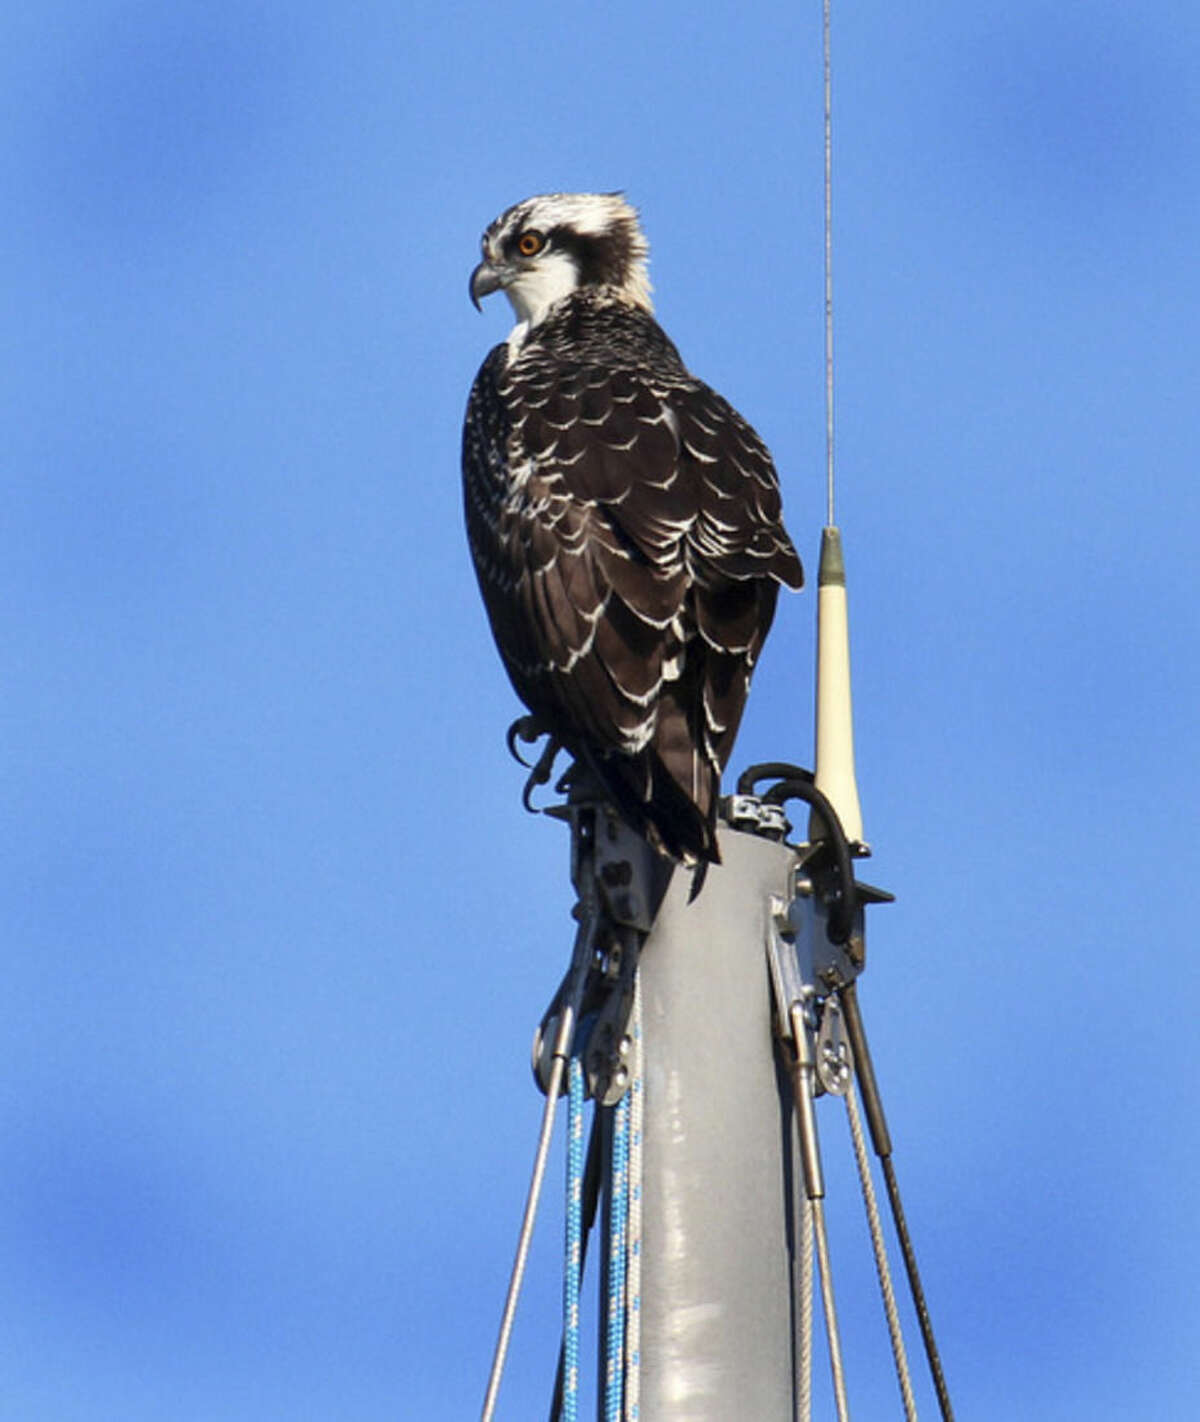 Photo by Chris Bosak A first-year Osprey sits on the top of a sailboat mast along the Norwalk River in Norwalk, Conn., summer 2015.